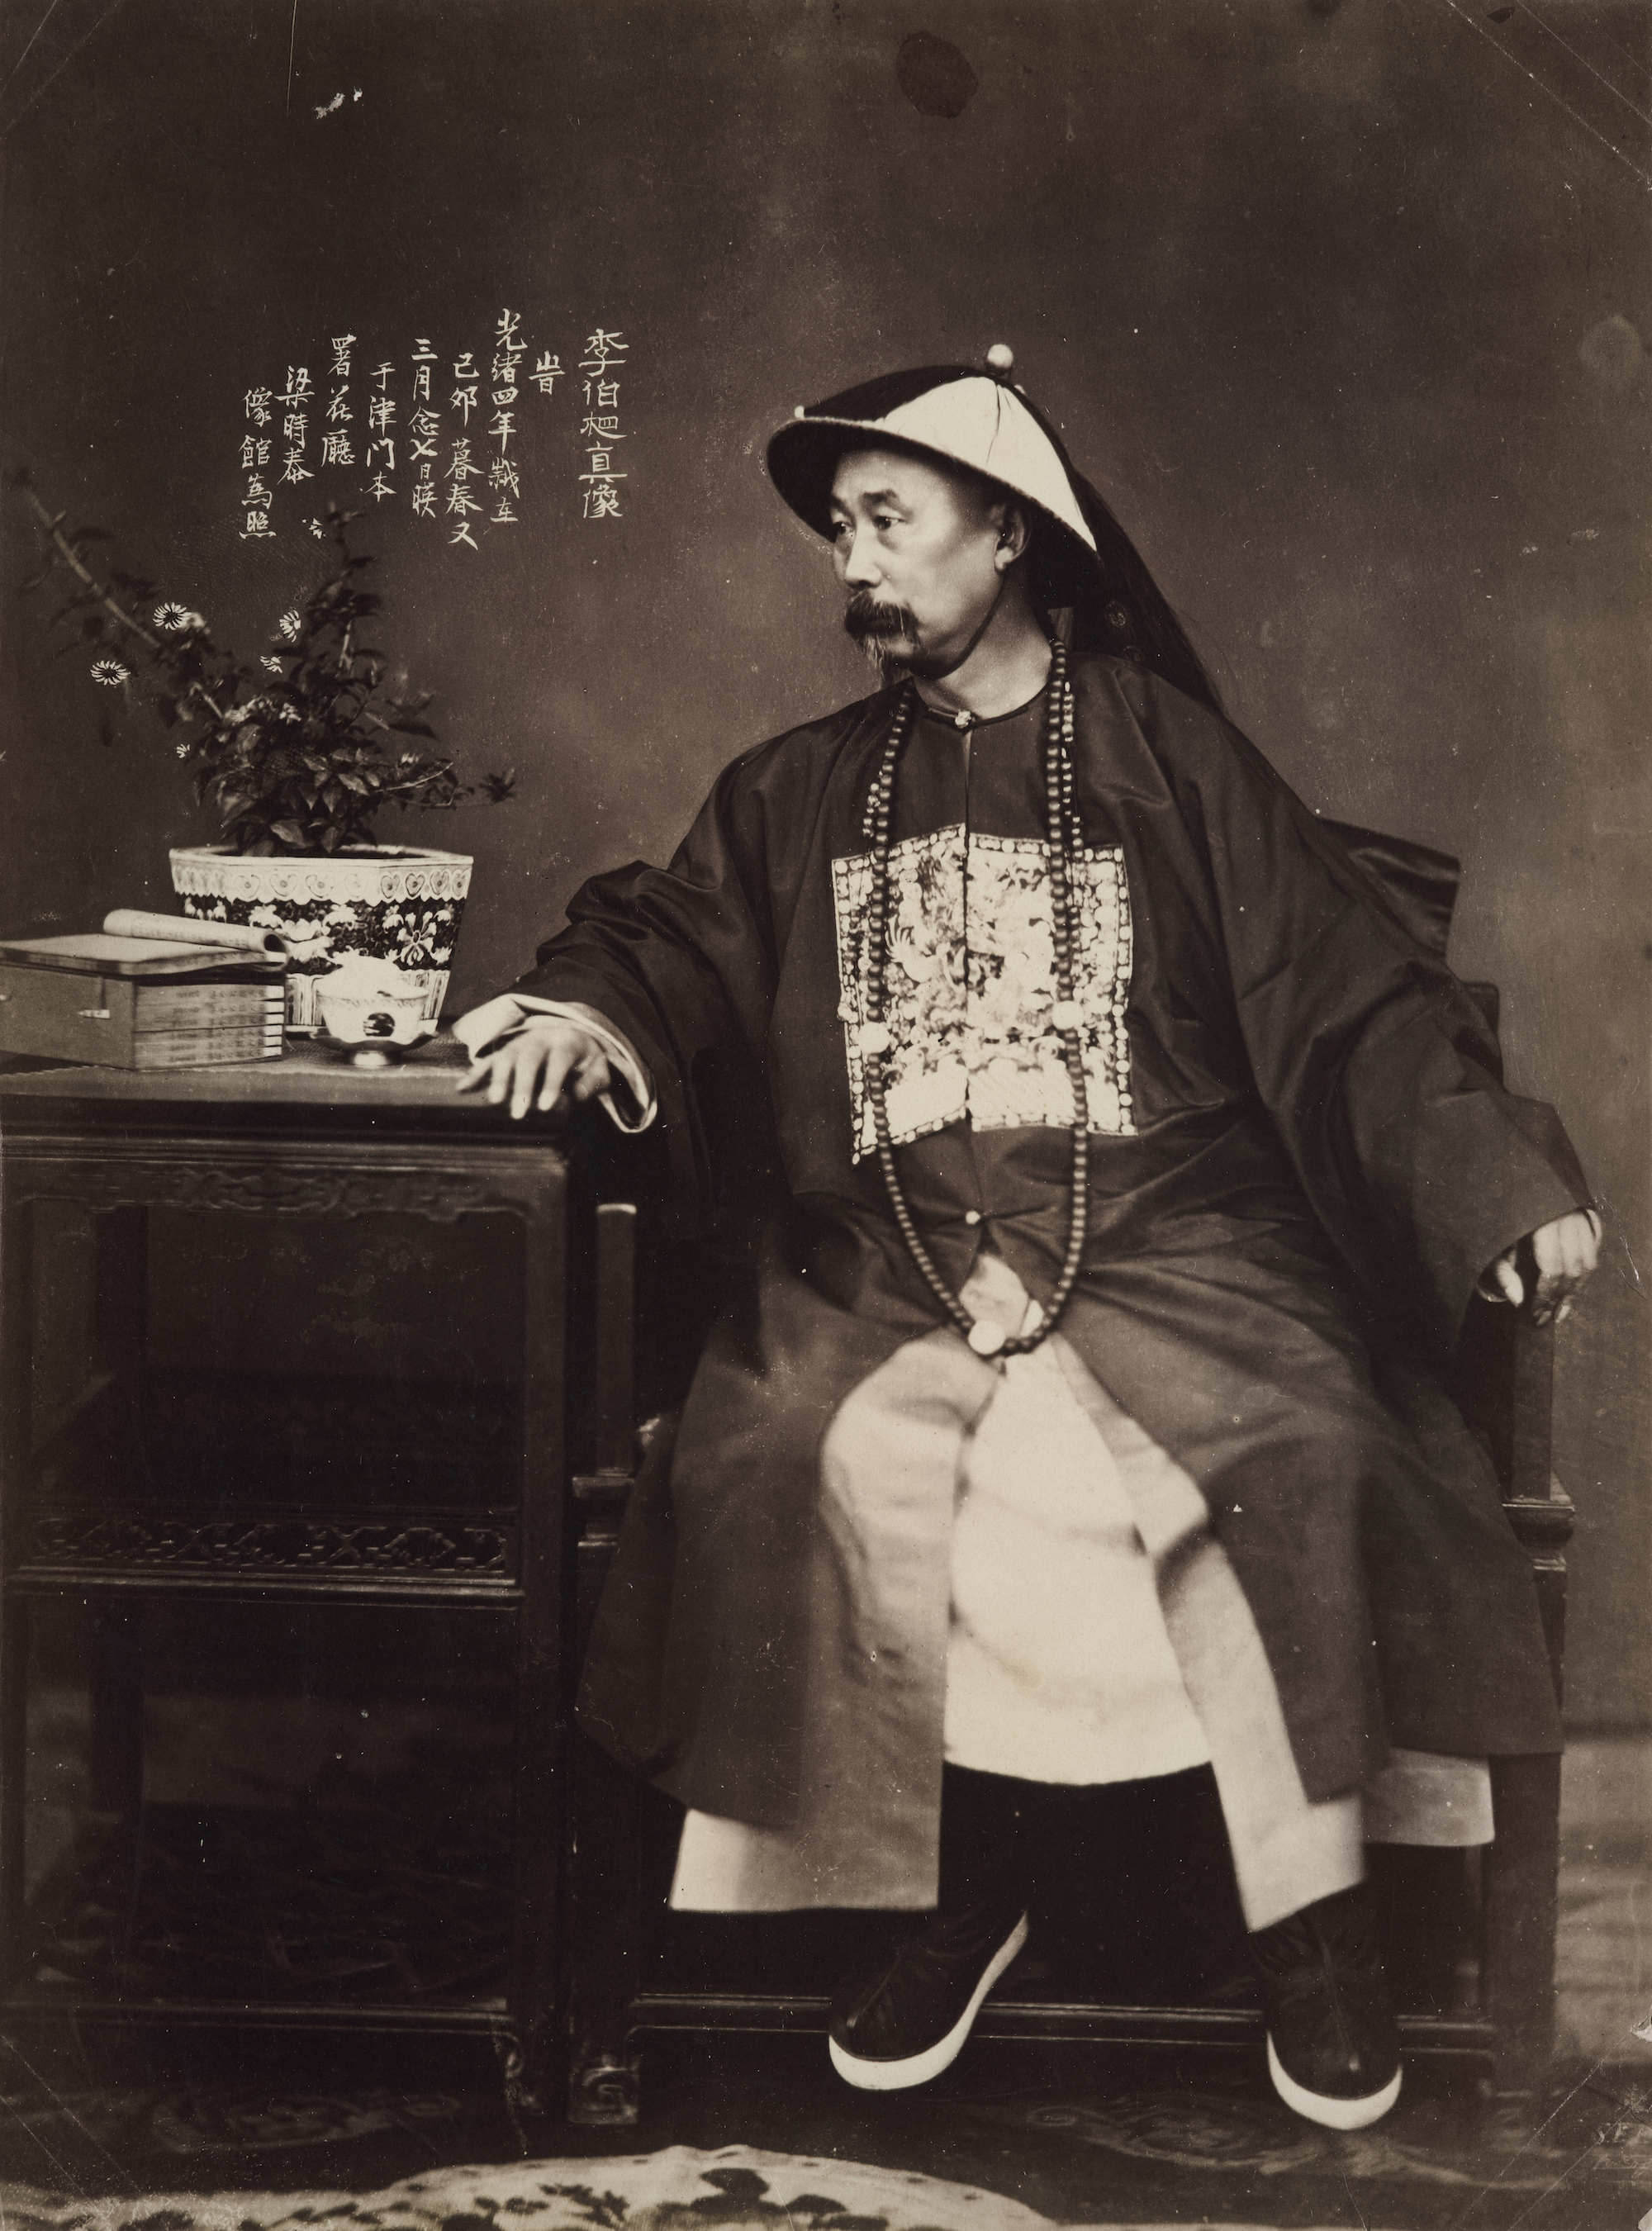 リャン・シタイ「李鴻章」=1870年ごろ/The Loewentheil Collection of China Photography